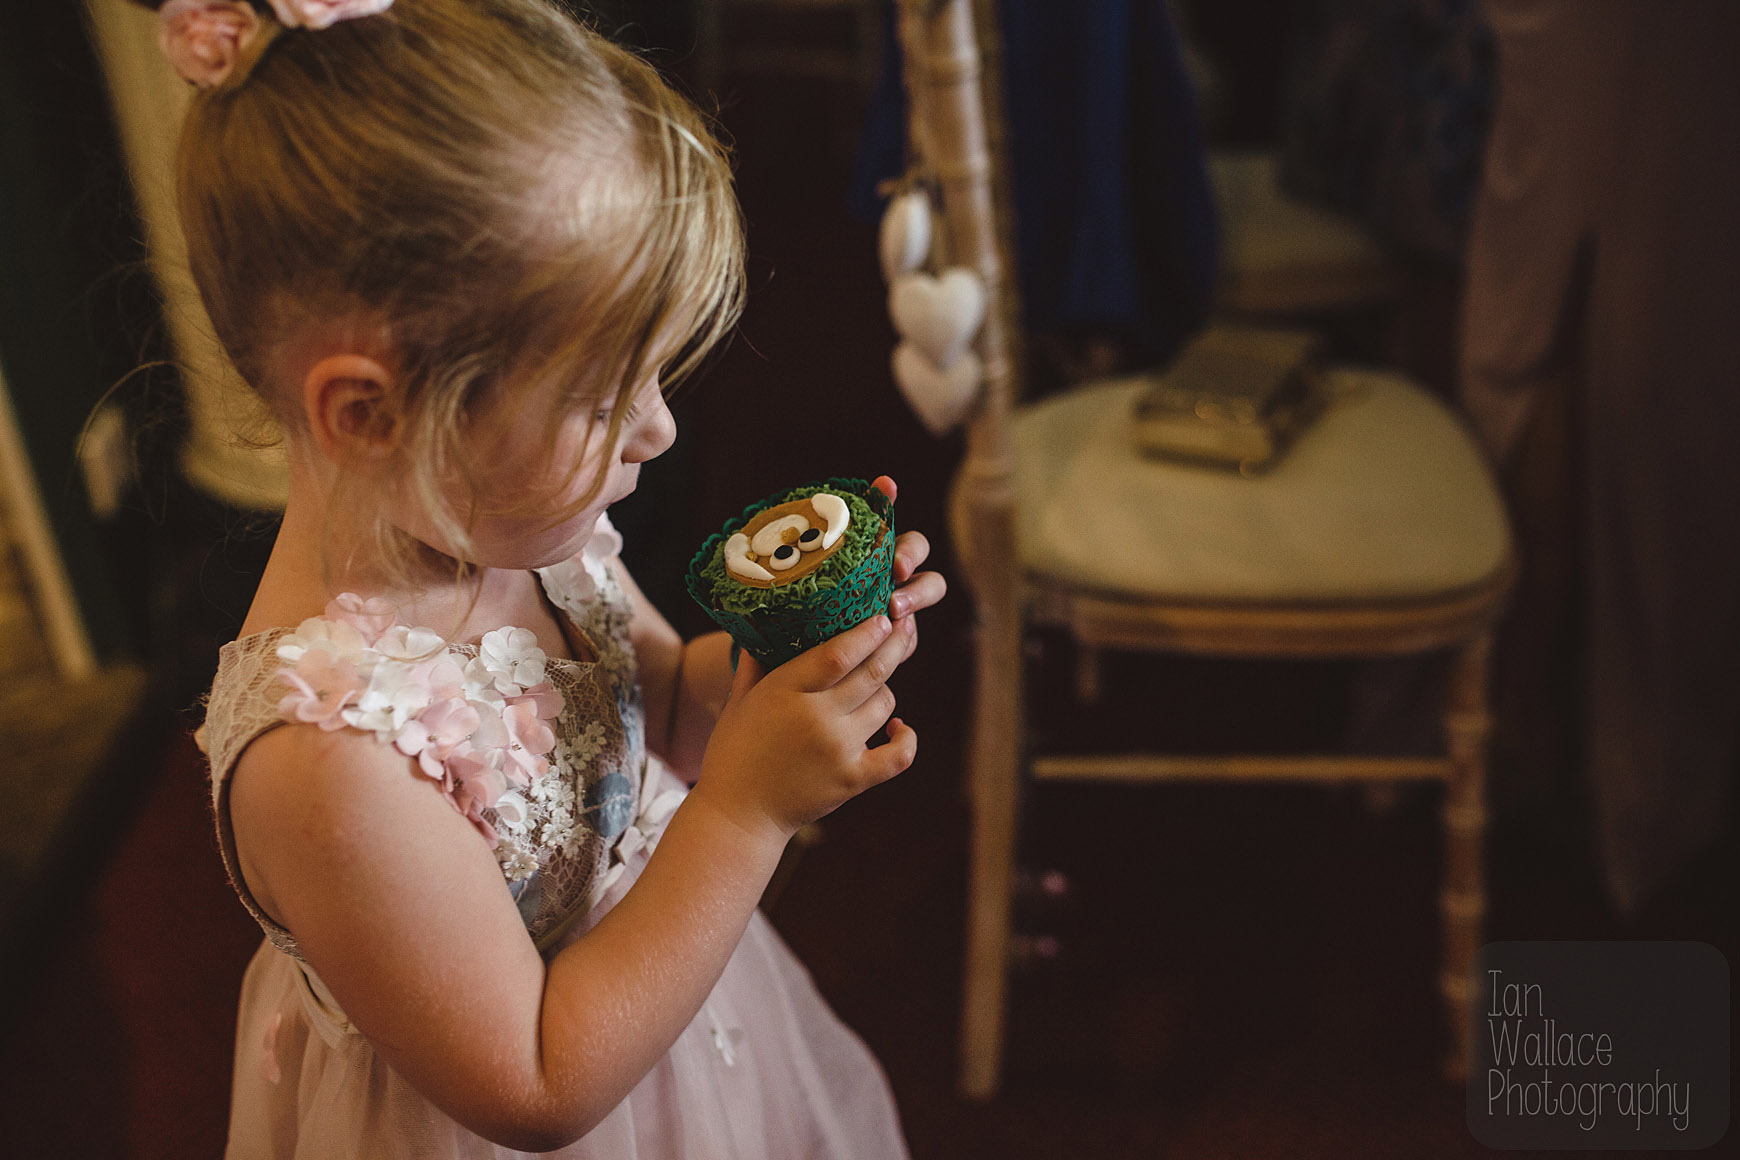 Flower-girl studying her cup cake which is about to be devoured.